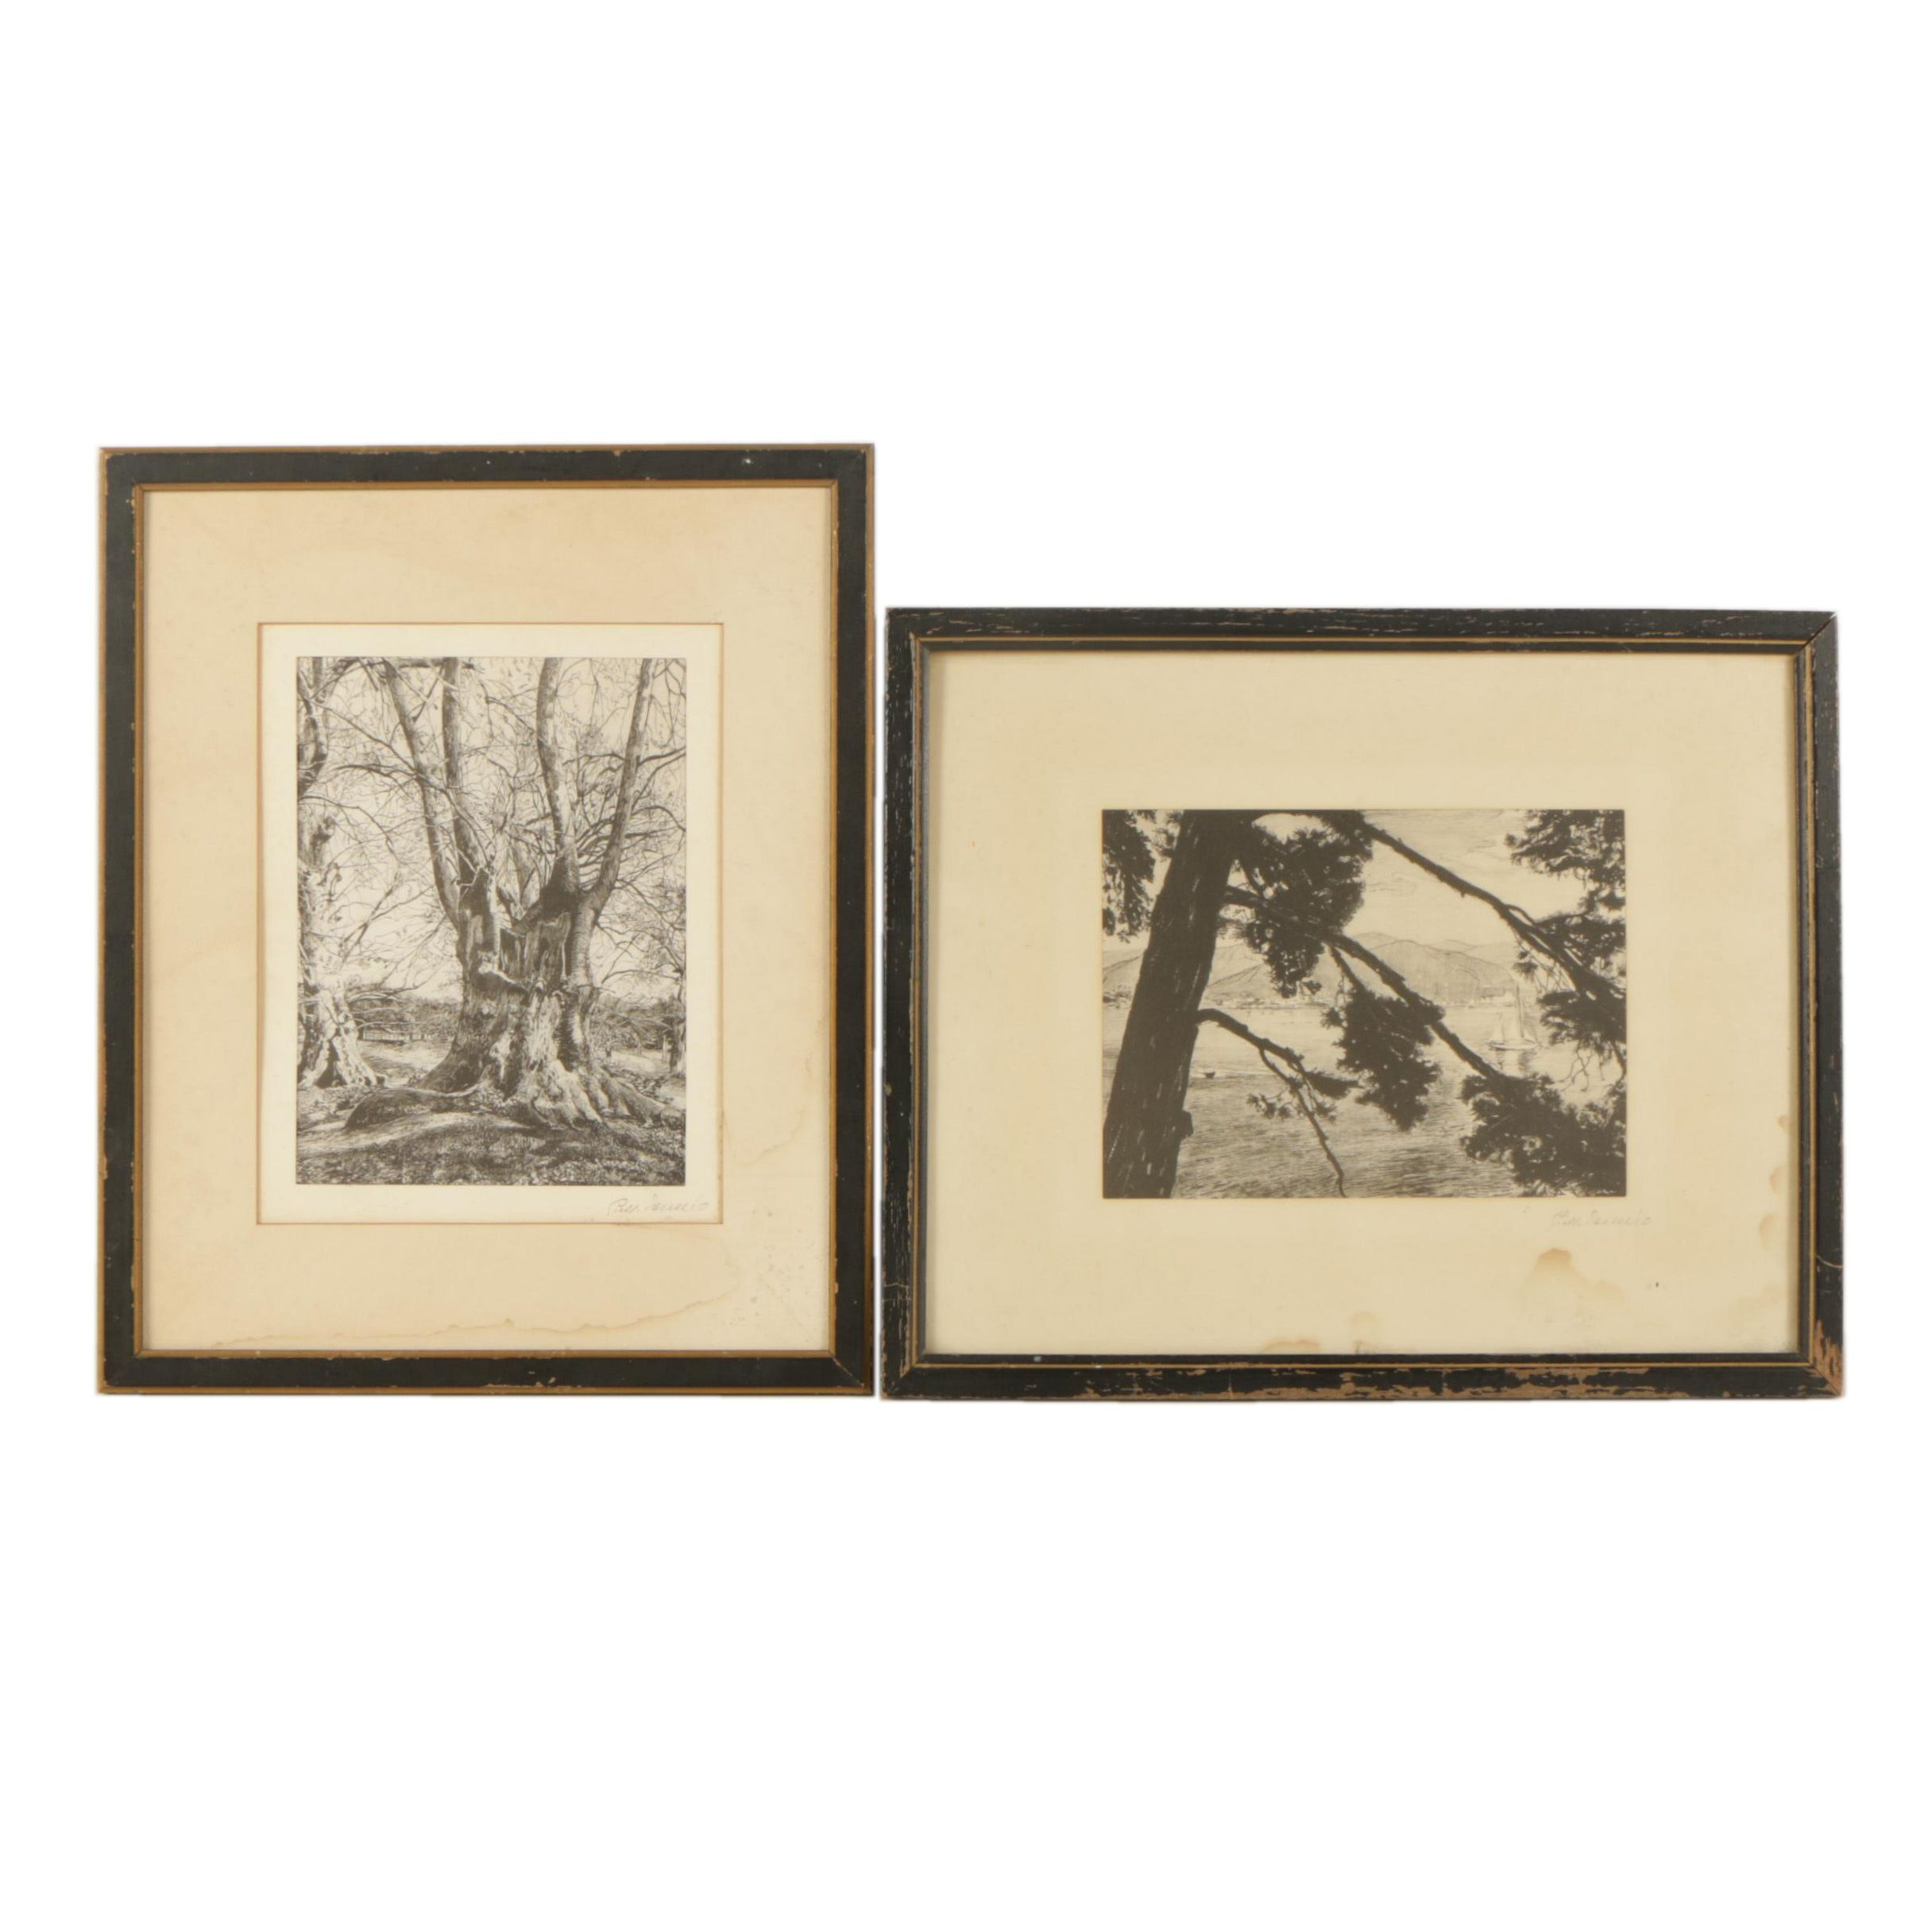 Reproduction Prints of Landscapes on Silk